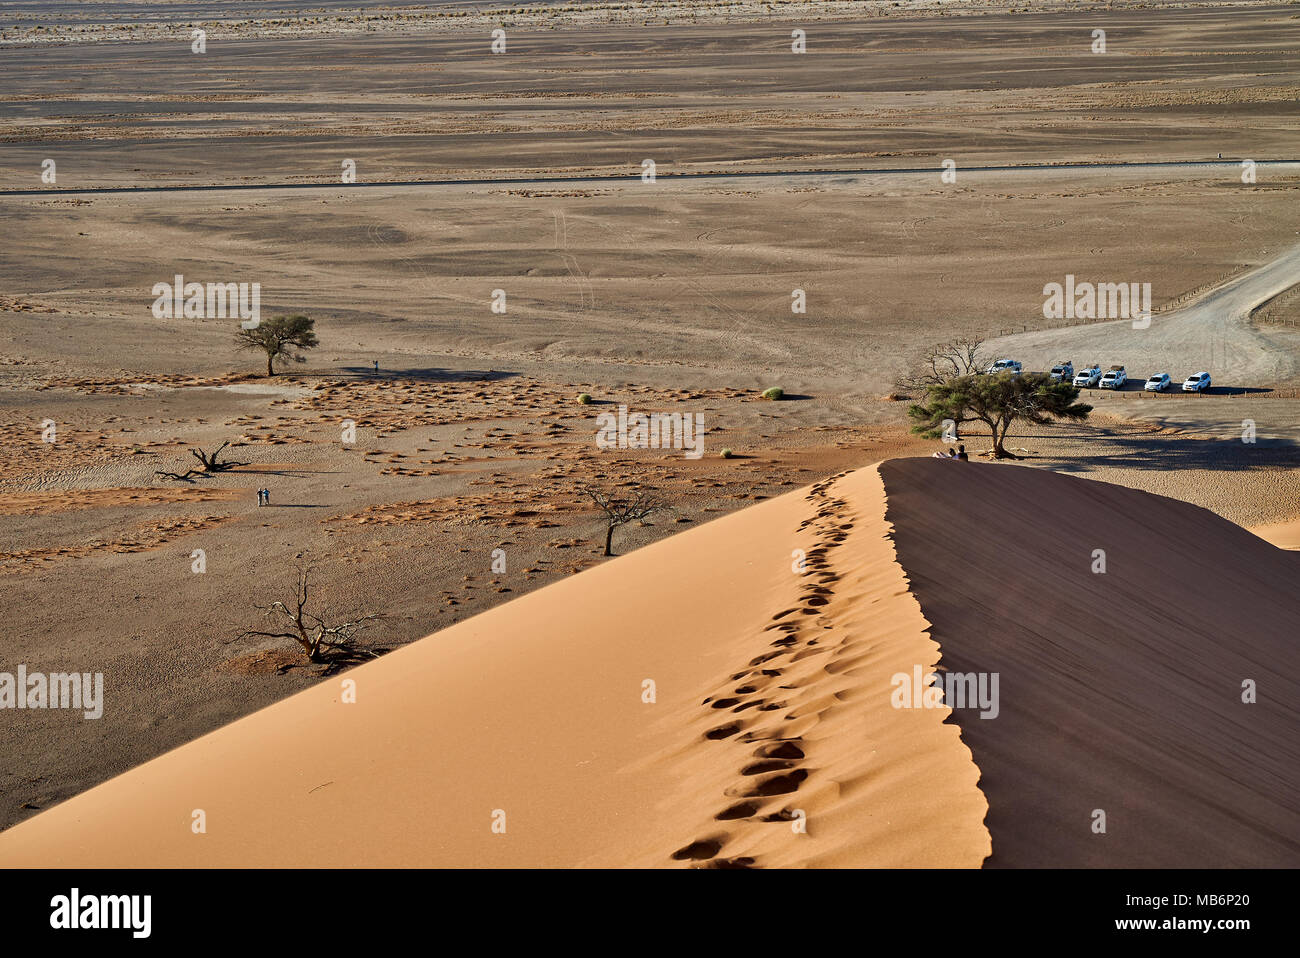 view from dune 45 into valley, desert landscape of Namib - Stock Image